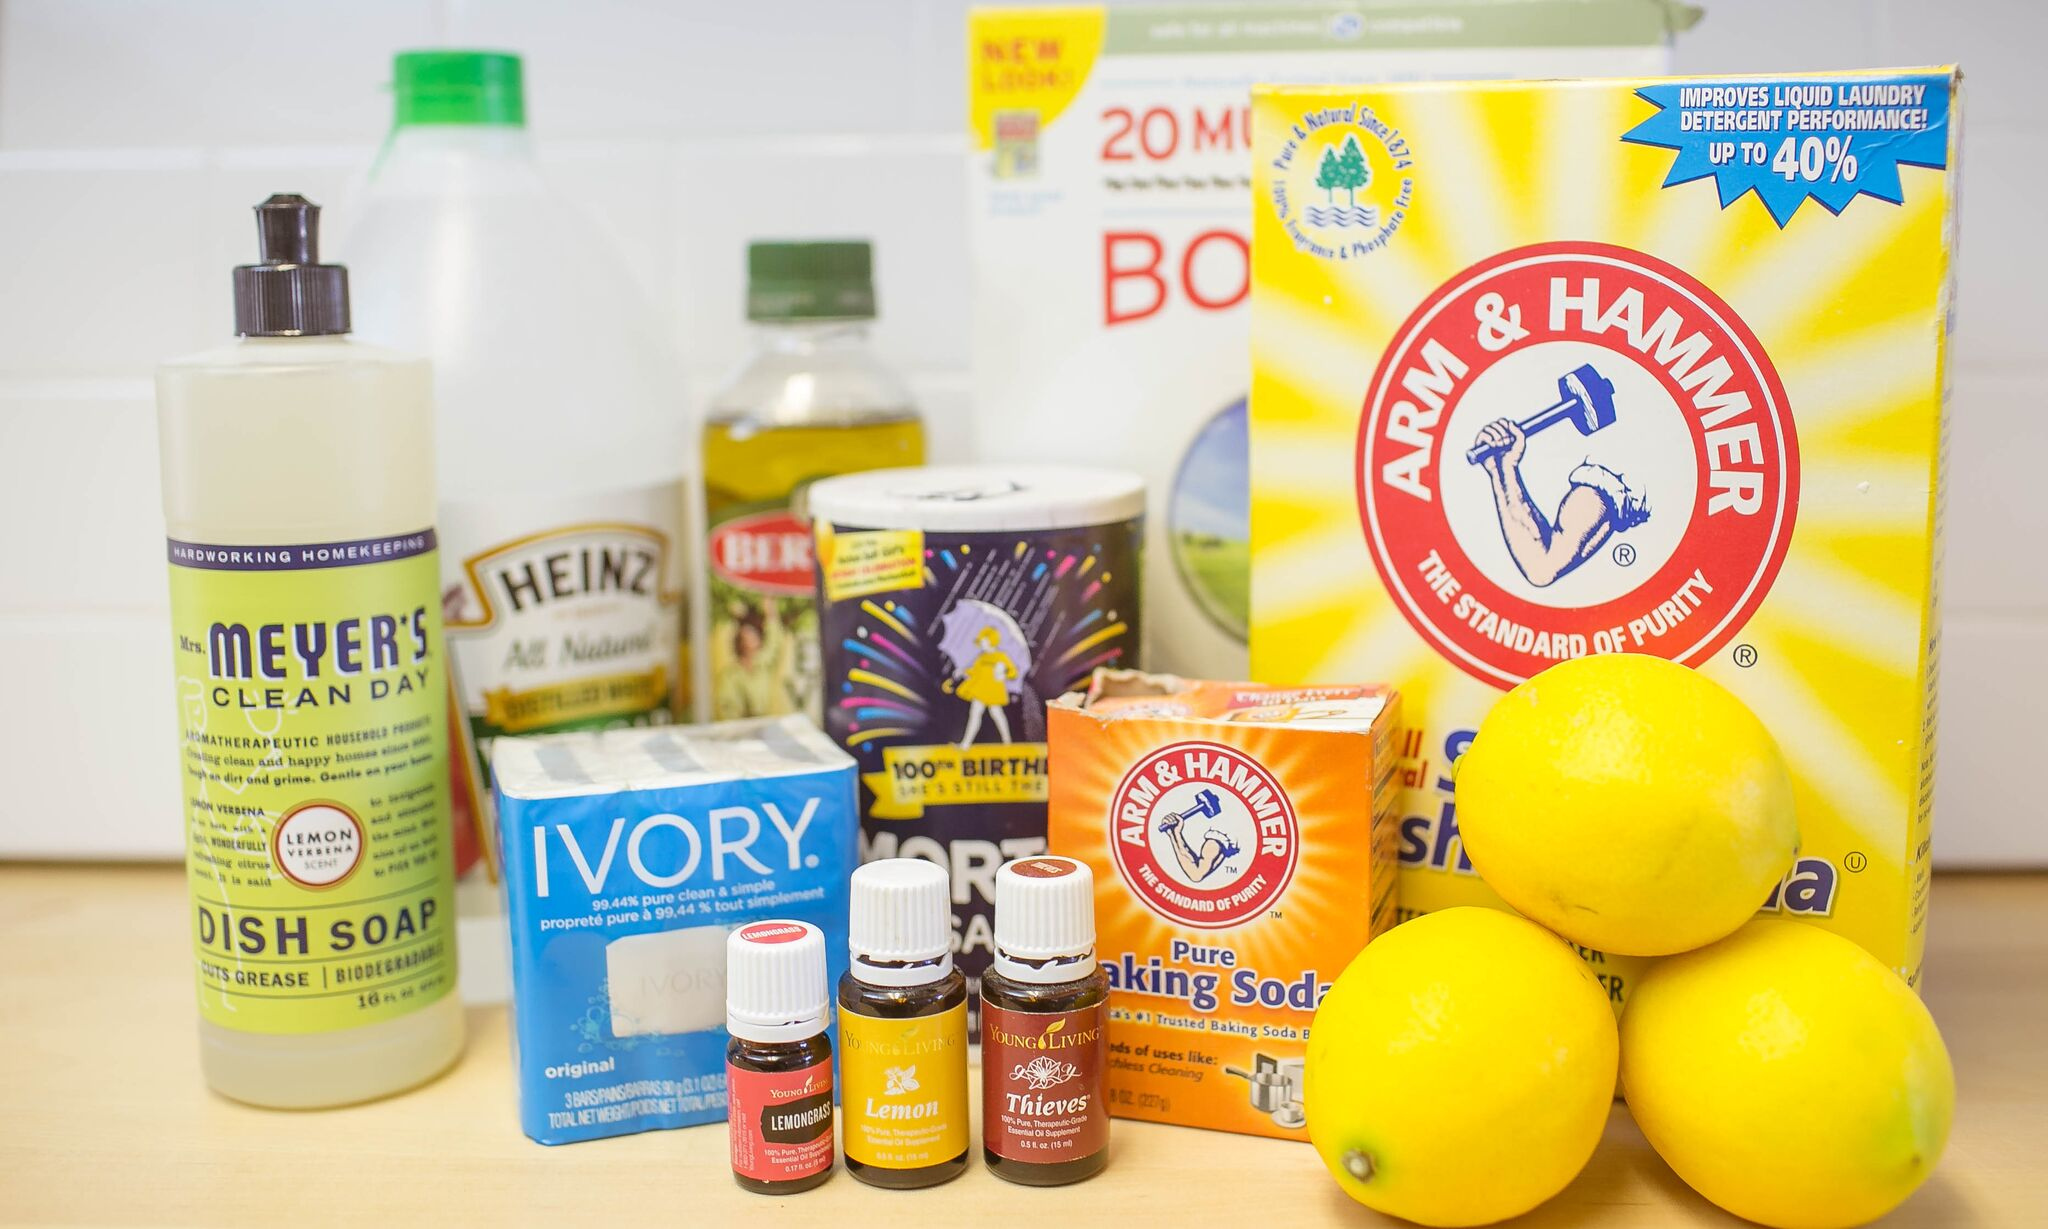 These are all the cleaning ingredients you need to make your own natural cleaners: dish soap, vinegar, lemons, baking soda, salt and oil.